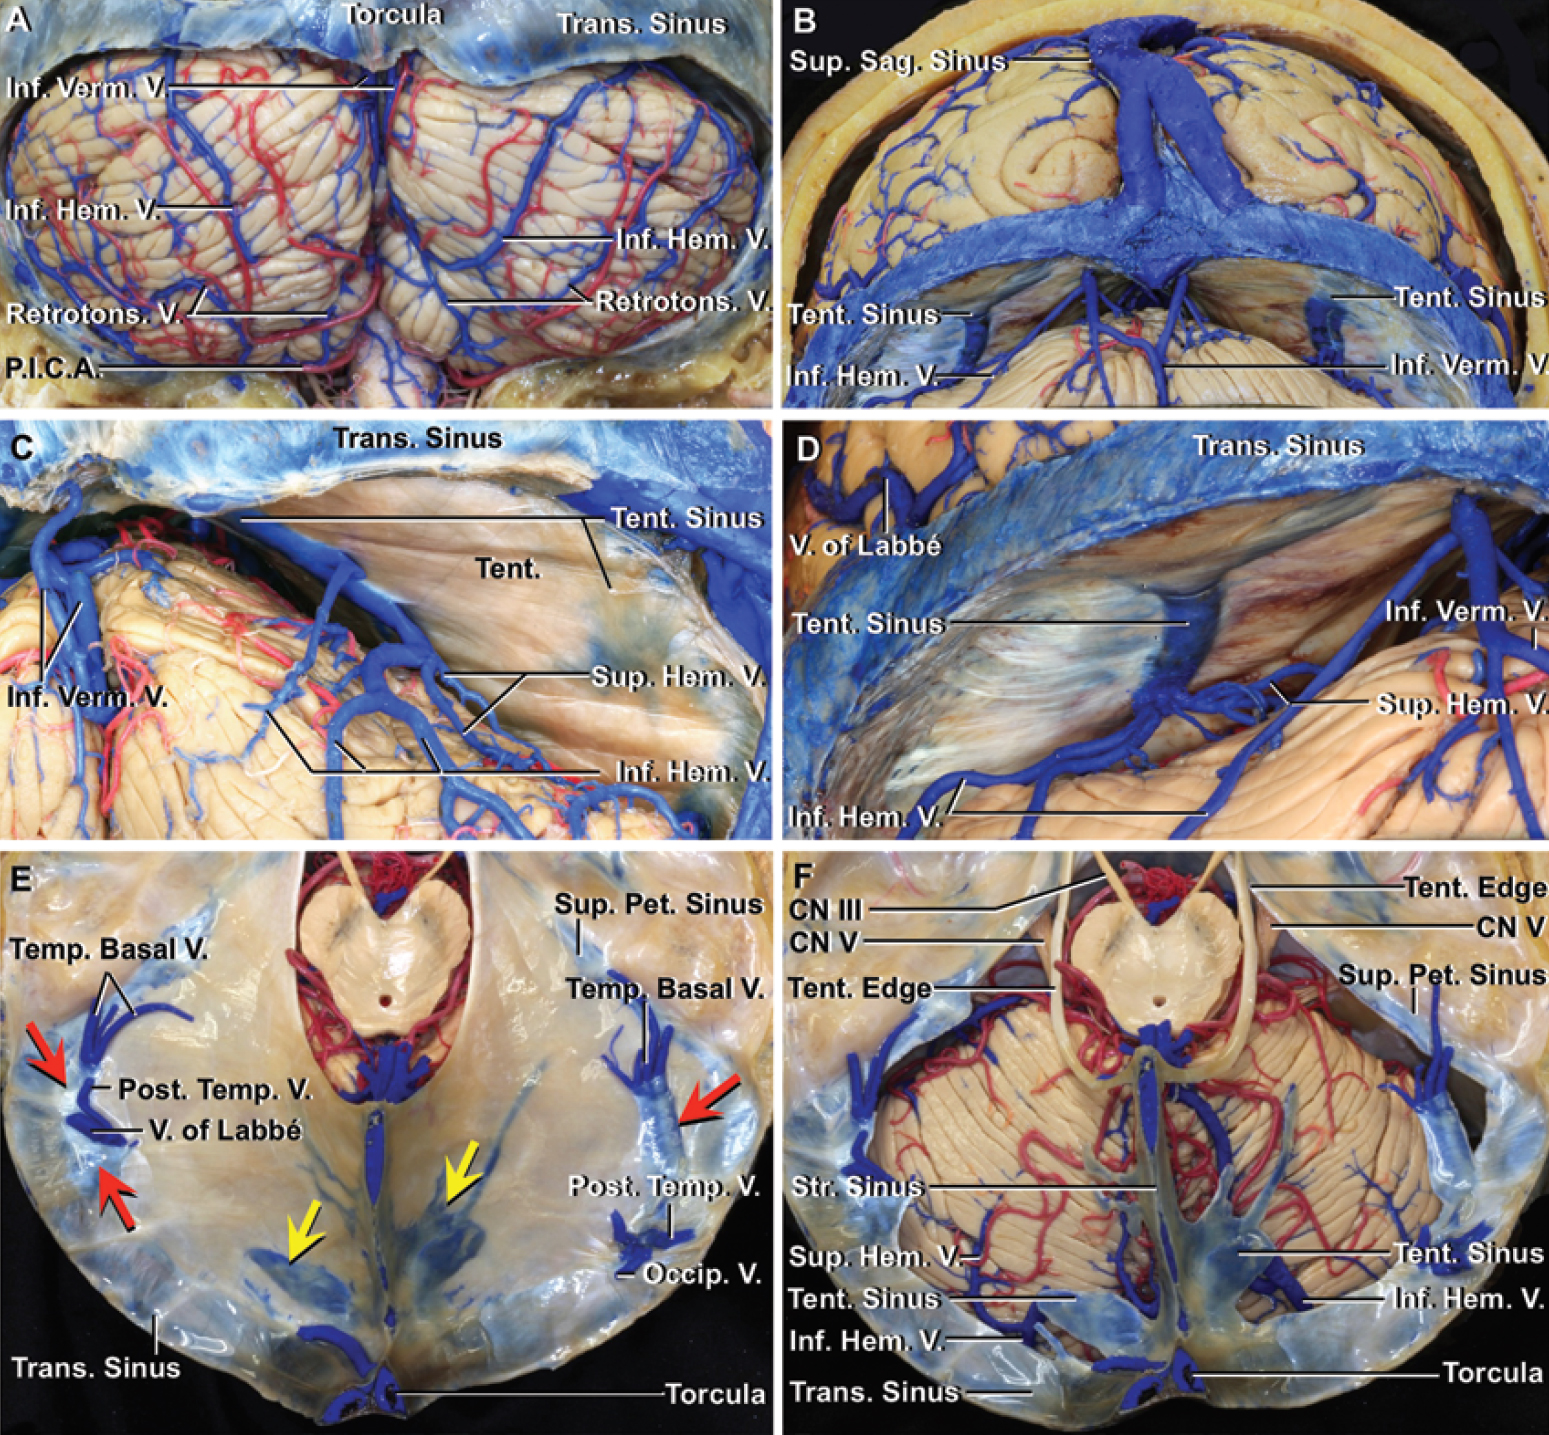 Figure. 6. Supracerebellar infratentorial microsurgical approaches to the pineal gland. A: Suboccipital surface of the cerebellum. The retrotonsilar veins ascend to join the inferior vermian veins, which ascend along the vermohemispheric fissures and empty into the transverse sinus near the torcula and midline. The inferior hemispheric veins ascend to empty into venous sinuses in the tentorium. The right inferior hemispheric veins anastomose with the retrotonsilar veins. B: Posterior view beneath the tentorium. The inferior vermian vein drains the tonsil and inferior vermis and adjacent part of the hemisphere and empties into the transverse sinus near the midline. The superior and inferior hemispheric veins drain the suboccipital and tentorial cerebellar surfaces and empty into the tentorial sinus, which may empty into either the straight (C) or transverse sinus (D). The off-midline infratentorial approaches directed between the 2 groups of hemispheric bridging veins can often access the pineal gland without sacrificing any of these bridging veins, while the midline approach will often require significant retraction or obliteration of some of these bridging veins. C: Posterior view beneath the right half of the tentorium. The superior and inferior hemispheric veins drain the suboccipital and tentorial cerebellar surfaces and empty into a tentorial sinus, which empties into the straight sinus in the posterior fossa. D: Posterior view beneath the left half of the tentorium. The superior and inferior hemispheric veins drain the suboccipital and tentorial cerebellar surfaces and empty into a tentorial sinus that empties into the transverse sinus. E: Superior view of the tentorium. The cerebral hemispheres have been removed while preserving the tentorium. Each half of the tentorium has 2 tentorial sinuses. The medial tentorial sinuses (yellow arrows) course medially to empty into the straight sinus near the junction of the straight and transverse sinuses. The lateral tentorial sinuses (red arrows), formed by the union of veins from the basal and lateral surfaces of the temporal and occipital lobes, including the vein of Labbé and temporobasal and occipital veins, course laterally to empty into the terminal portion of the transverse sinus. F: Superior view of the tentorial cerebellar surface. The tentorium has been removed while preserving the tentorial edges and the tentorial, superior petrosal, straight, and transverse sinuses. The medial tentorial sinuses formed by the union of the superior and inferior hemispheric veins course medially to empty into the torcula or straight sinus. P.I.C.A. = posterior inferior cerebellar artery; Pet. = petrosal; Retrotons. = retrotonsilar; Tent. = tentorial, tentorium; Trans. = transverse.